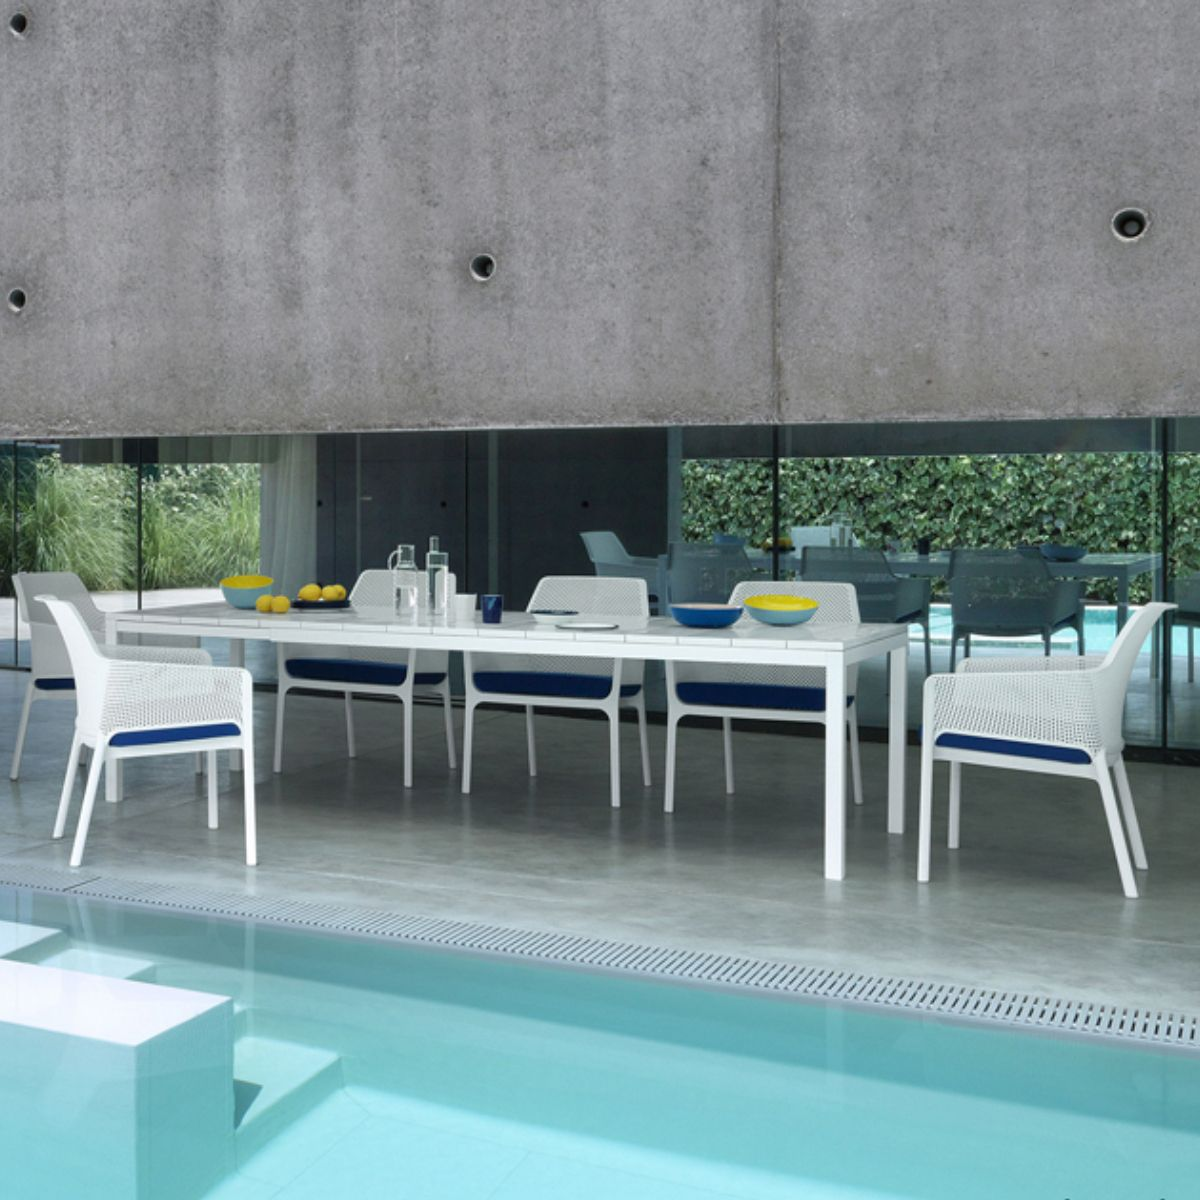 Table de jardin extensible et design Rio 100x210/280 par NARDI